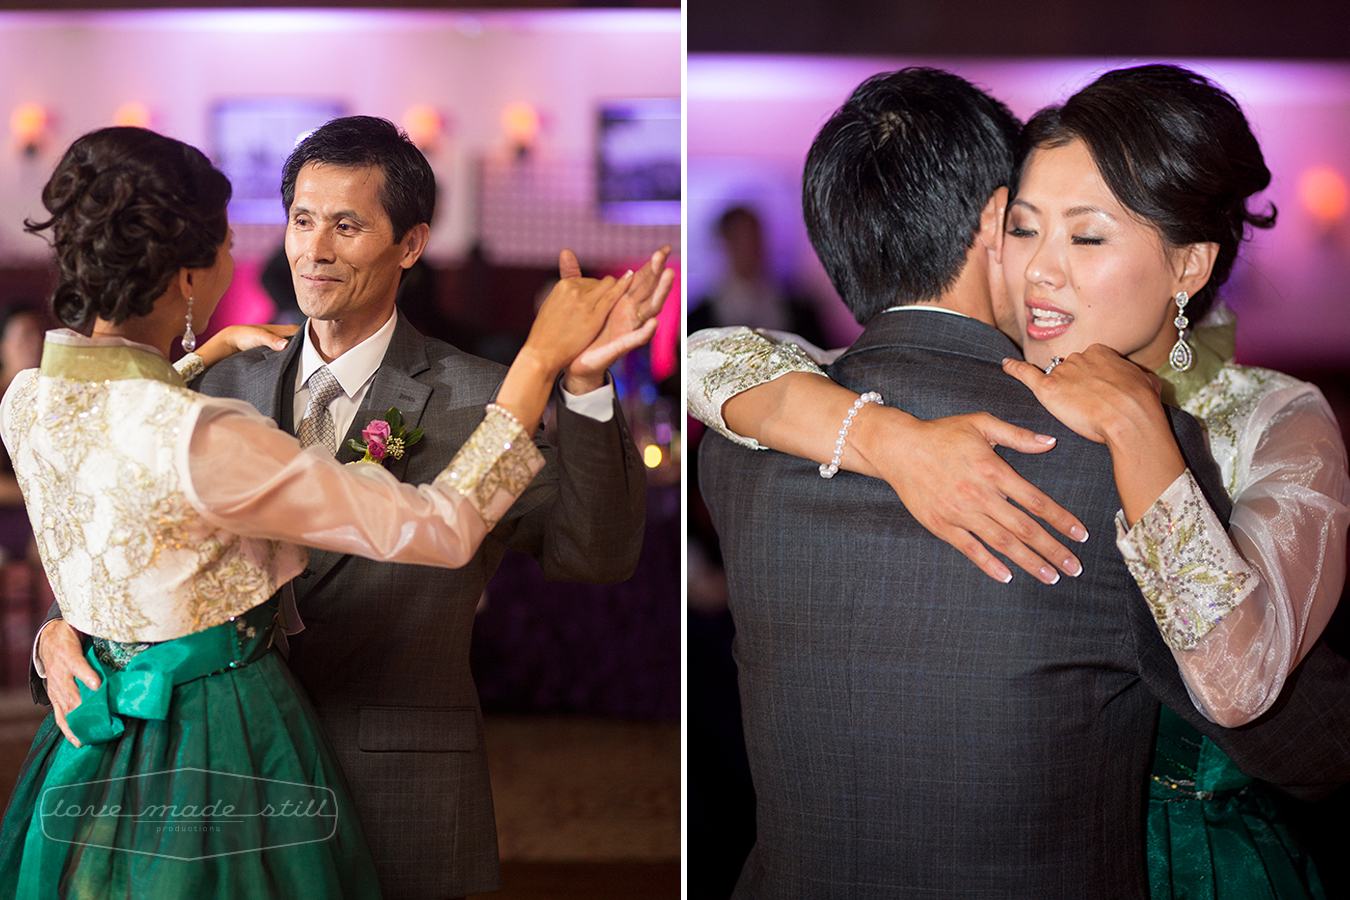 Father and daughter embrace eachother during their dance at the reception